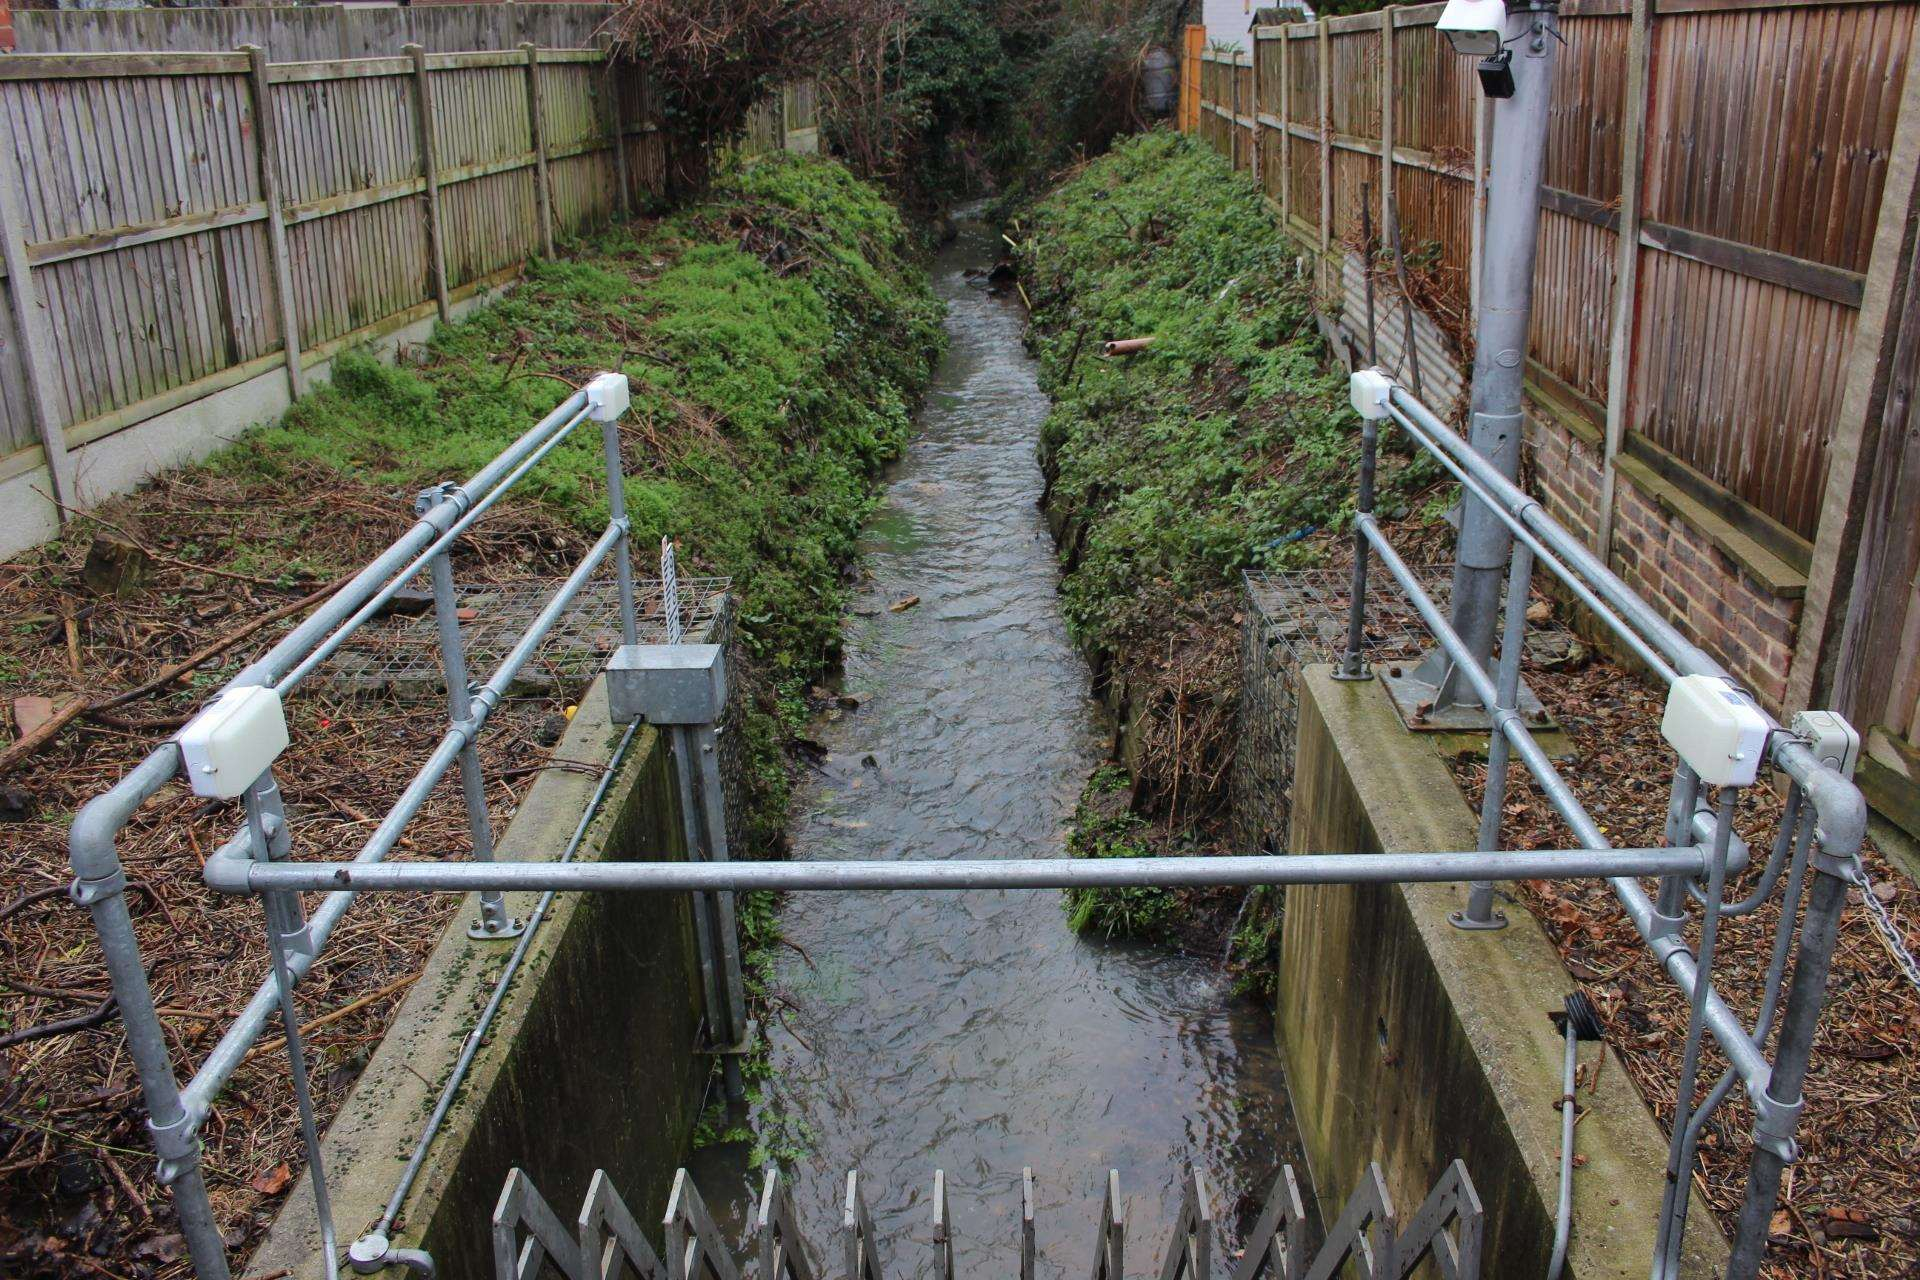 The stream next to Sean Maxwell's home in Sheerstone, Iwade